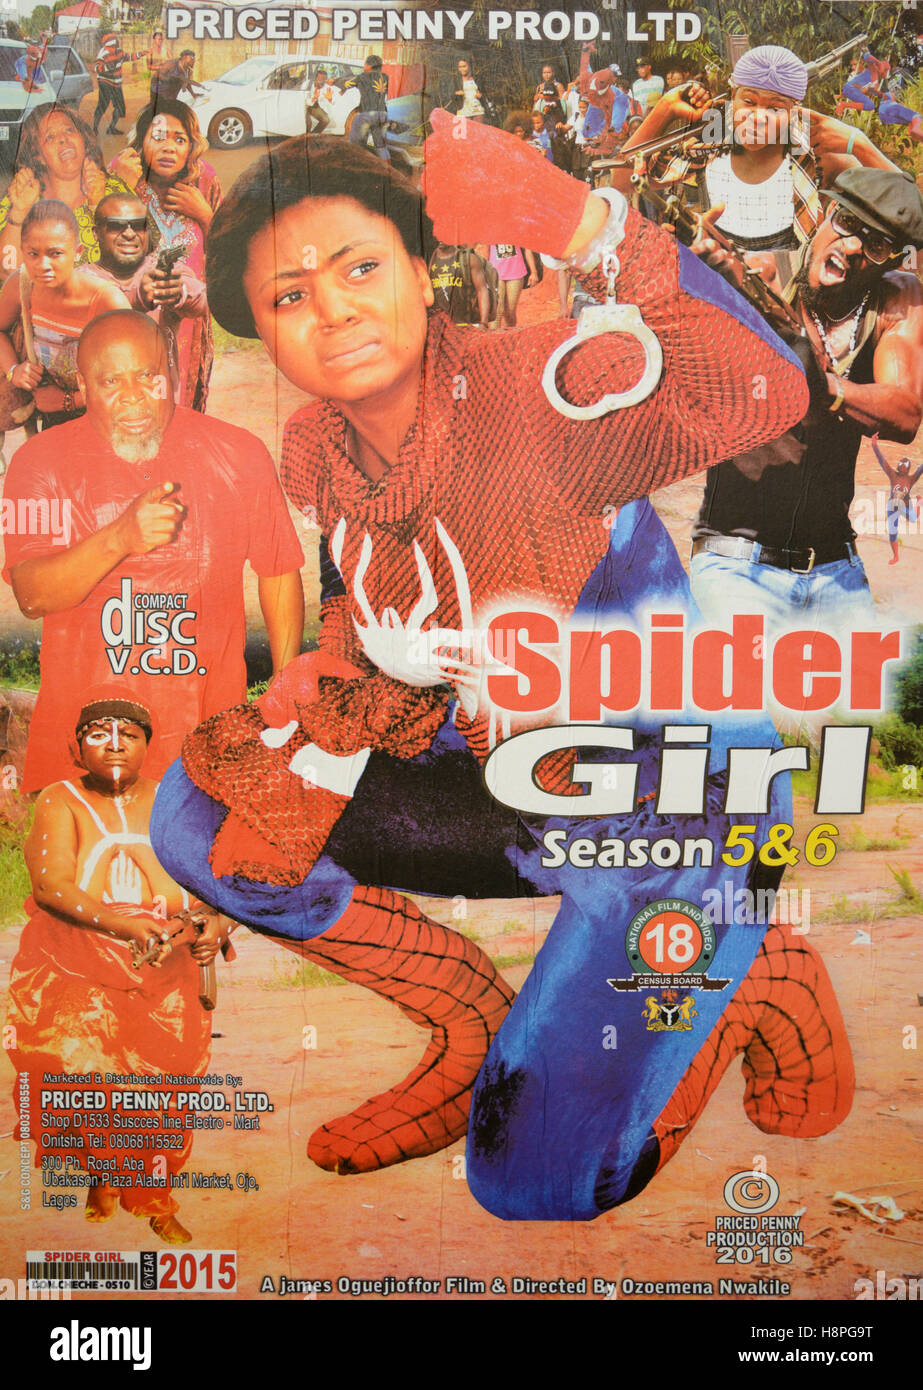 https://c8.alamy.com/comp/H8PG9T/nigerian-nollywood-film-or-movie-poster-spider-girl-H8PG9T.jpg